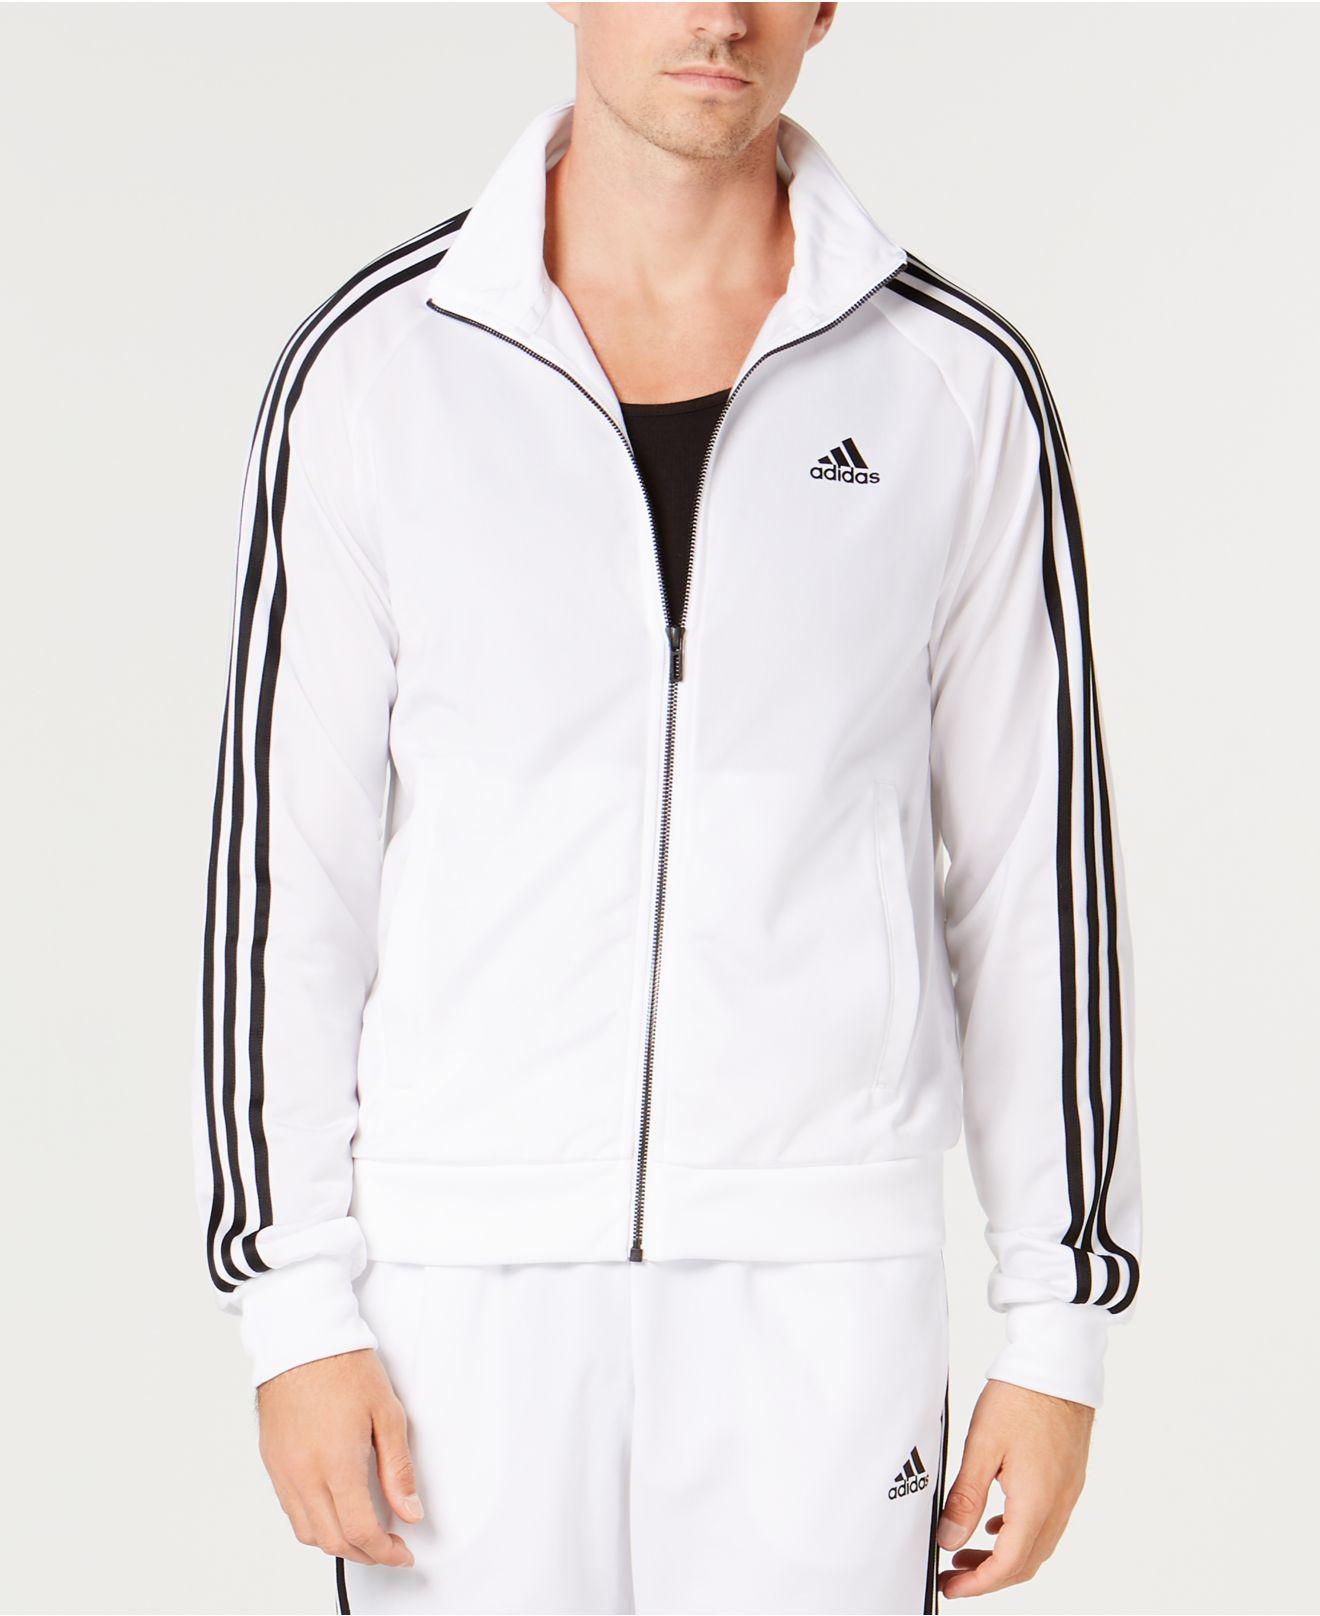 a19a0edad6e0 Lyst - adidas Essential Tricot Track Jacket in White for Men - Save 26%